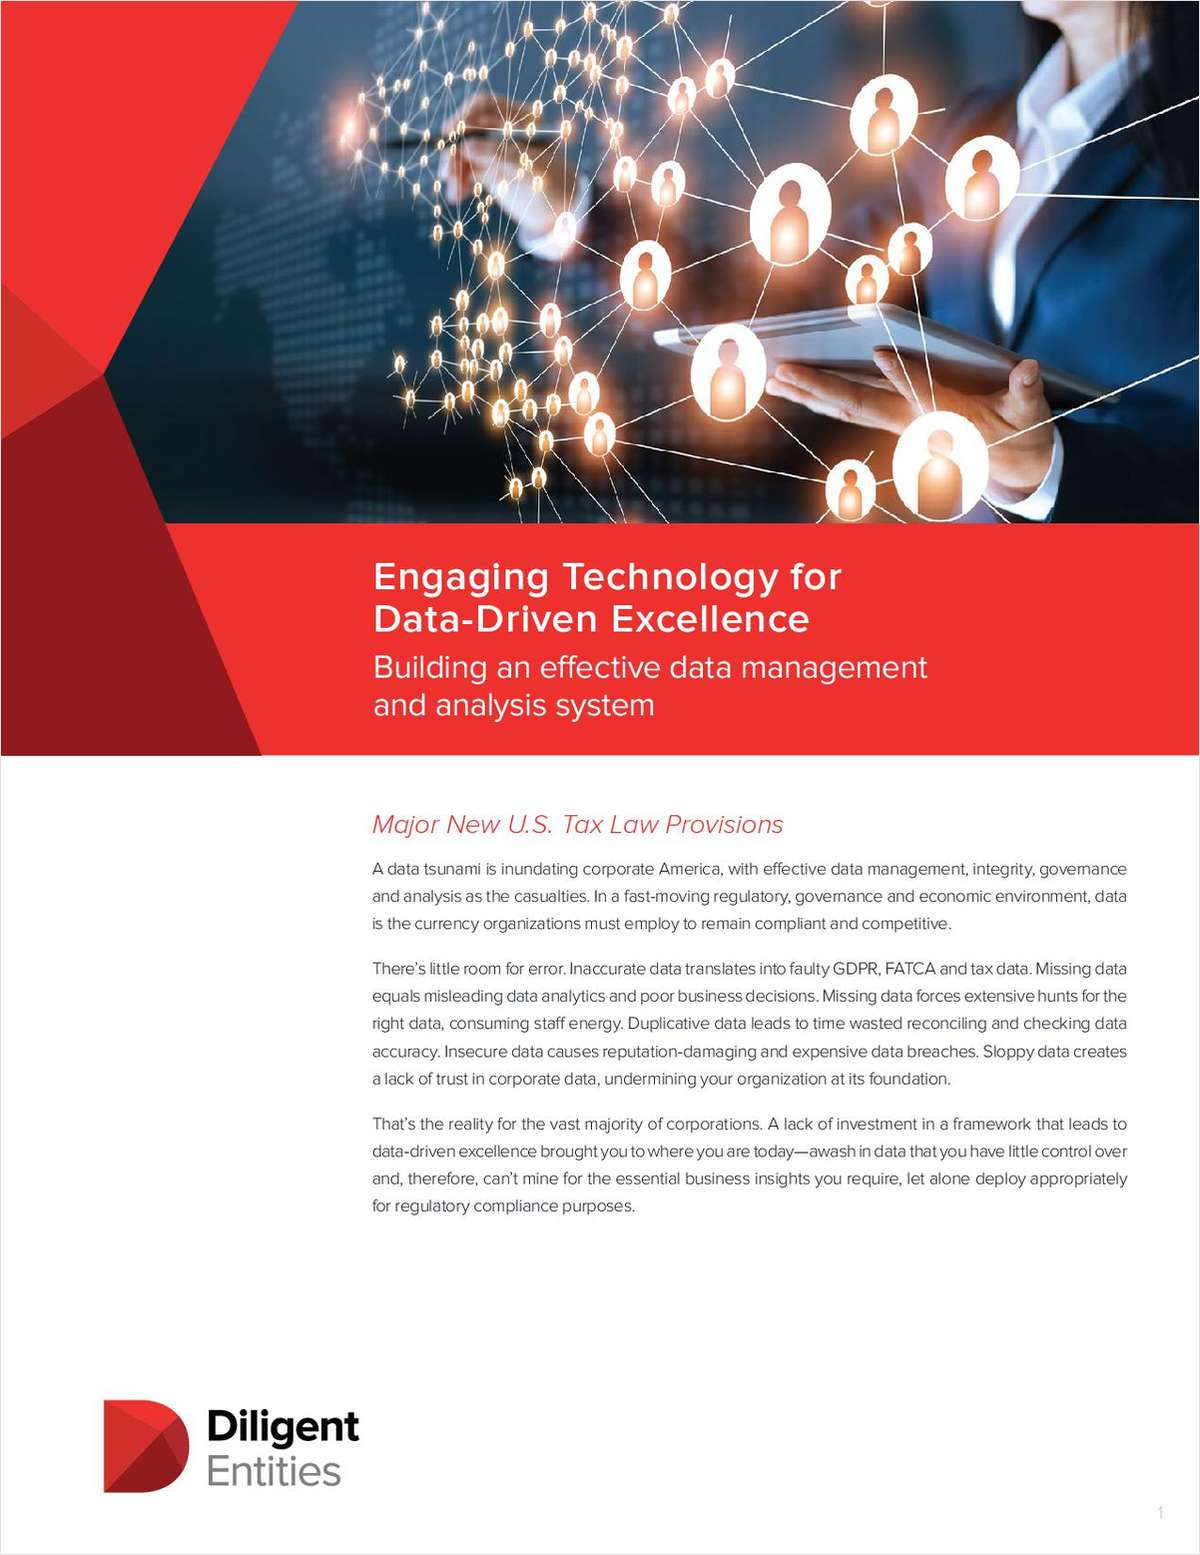 Engaging Technology for Data-Driven Excellence